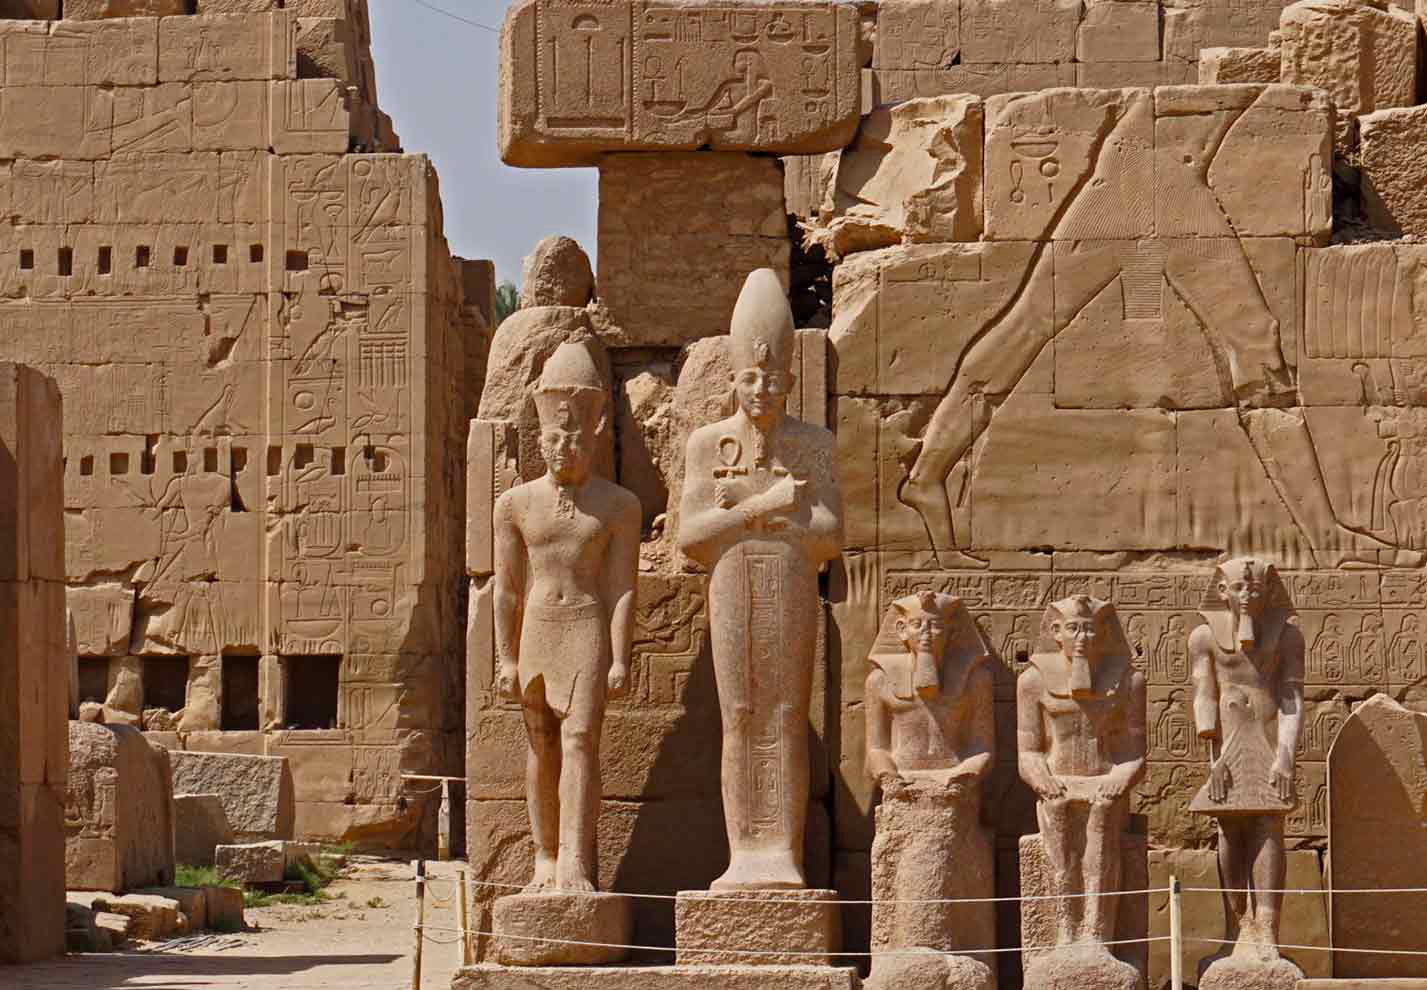 Ancient statues in Luxor